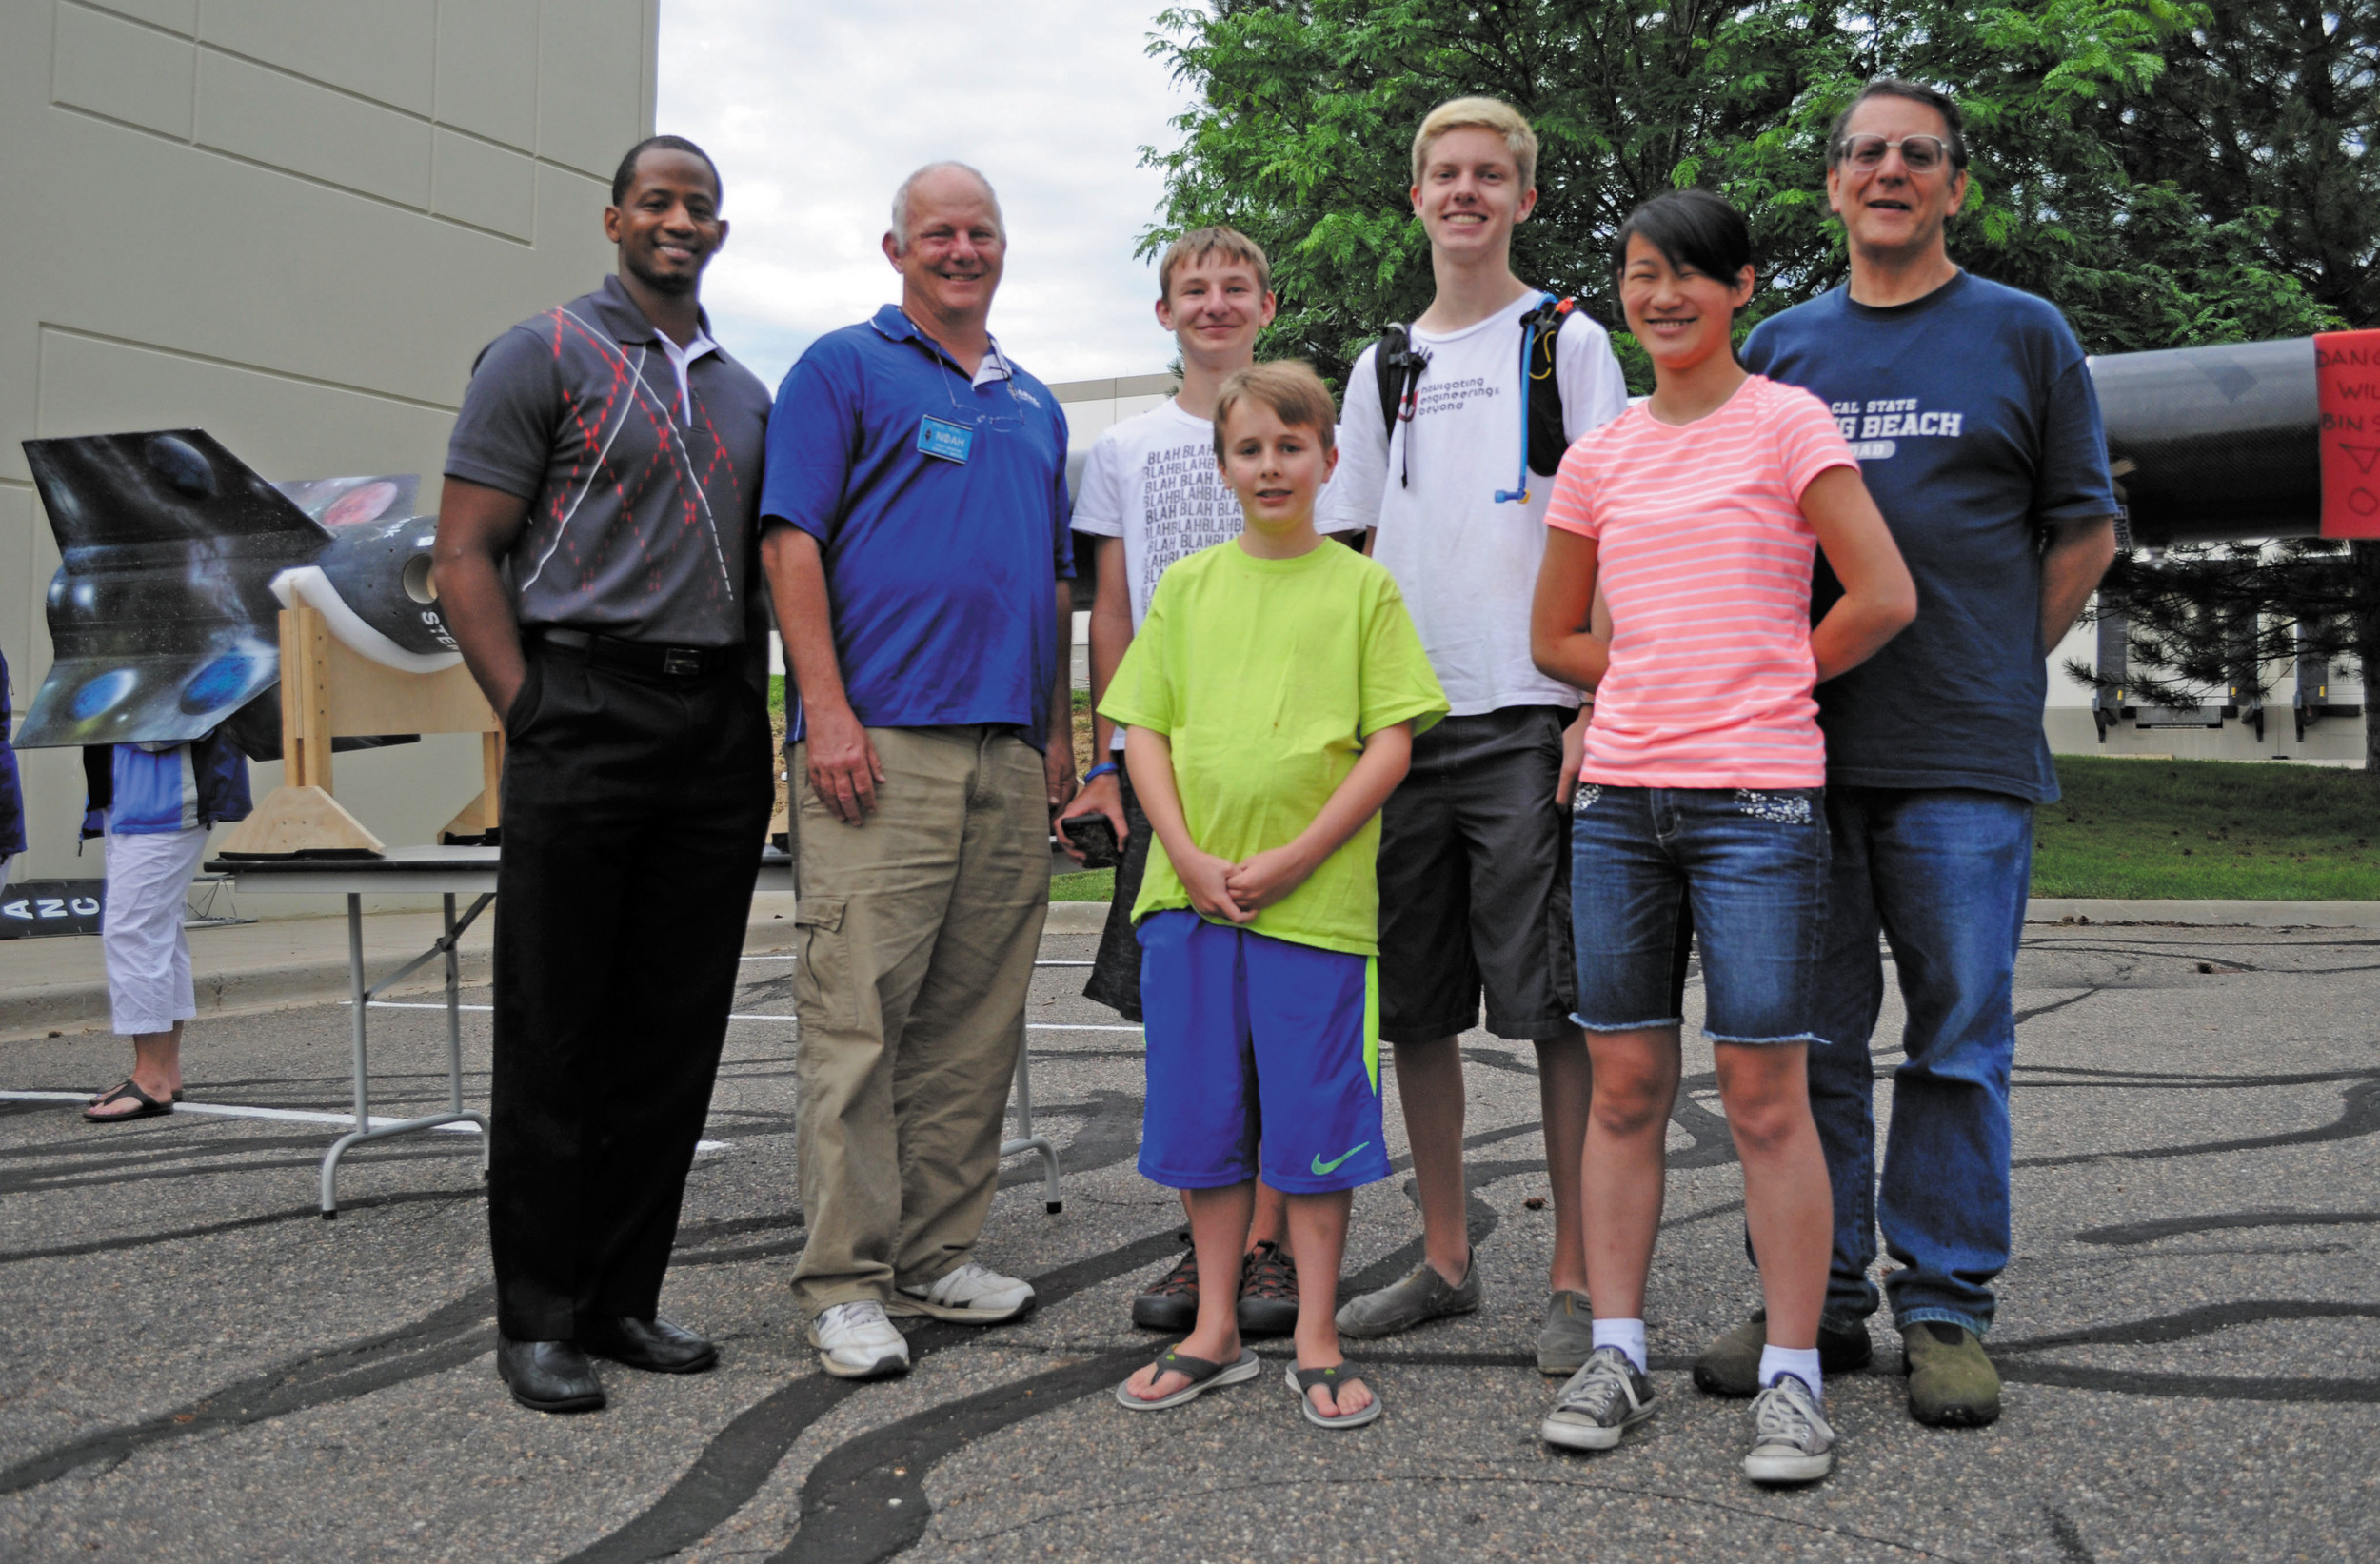 Students from STEM School and Academy in Highlands Ranch built a payload that was launched on a 25-foot ULA rocket in Pueblo on July 18. From left to right are, ULA mentor Taheem Williams, Bryon Paul Veal of APRL,  STEM students  Alex Gentilucci (front), Gunnar Enserro, Grayson Gerlich and Ari Martinez and instructor/former ULA engineer Jeff Dunker.